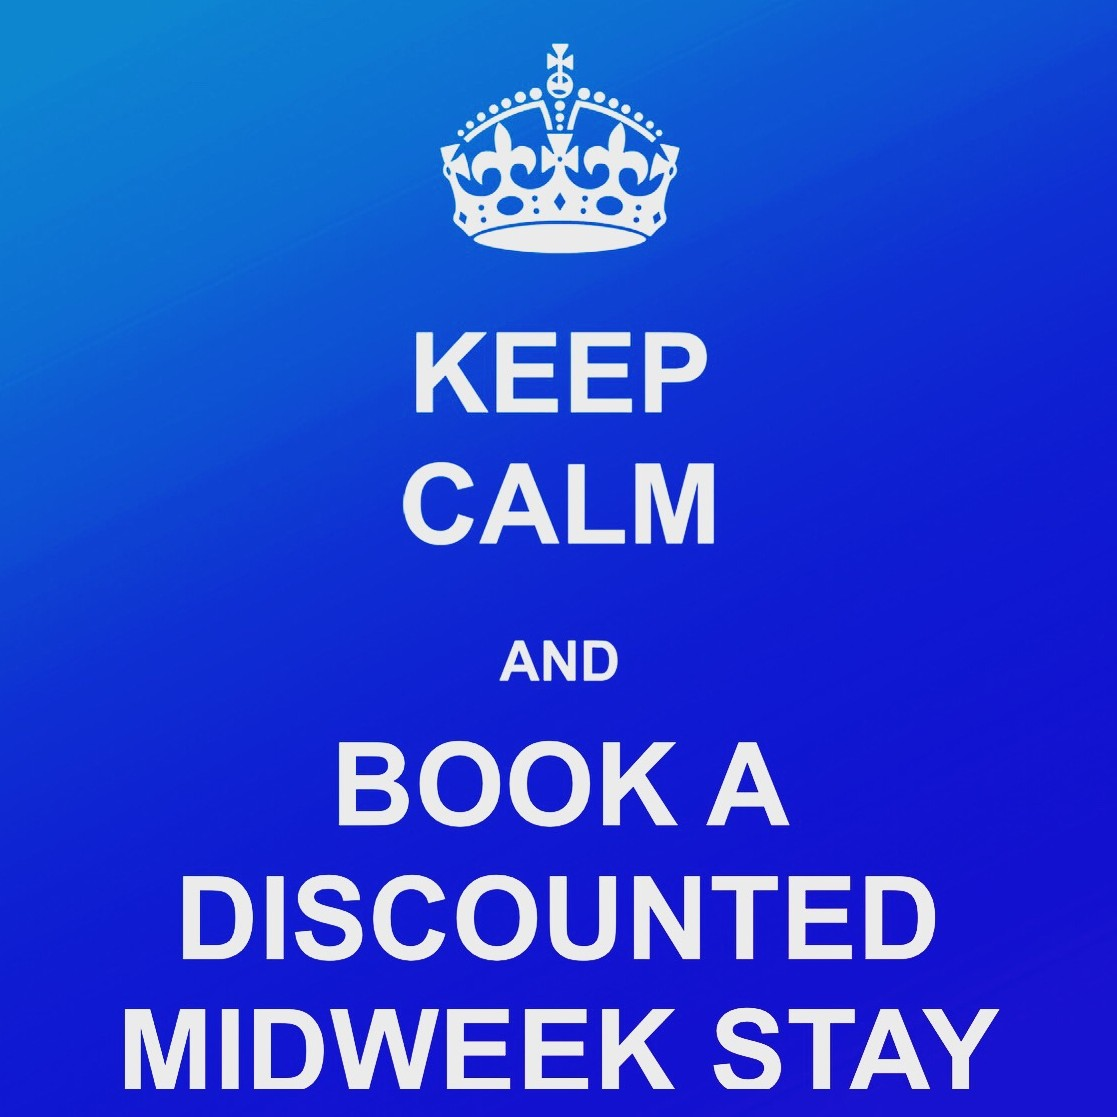 Keep Calm and Book a Discounted Midweek Stay